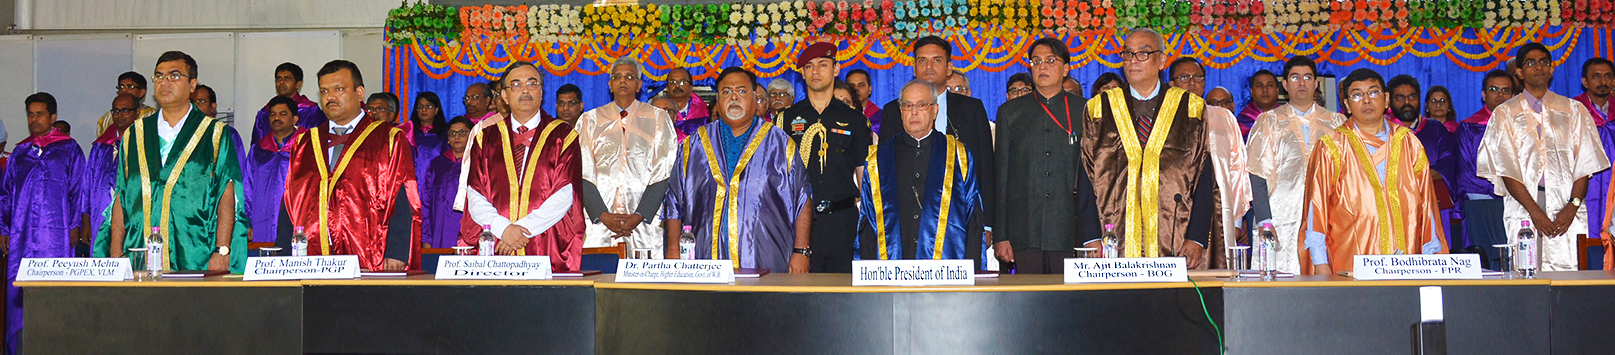 Hon'ble President of India and other dignitaries - 52nd Annual Convocation 2017